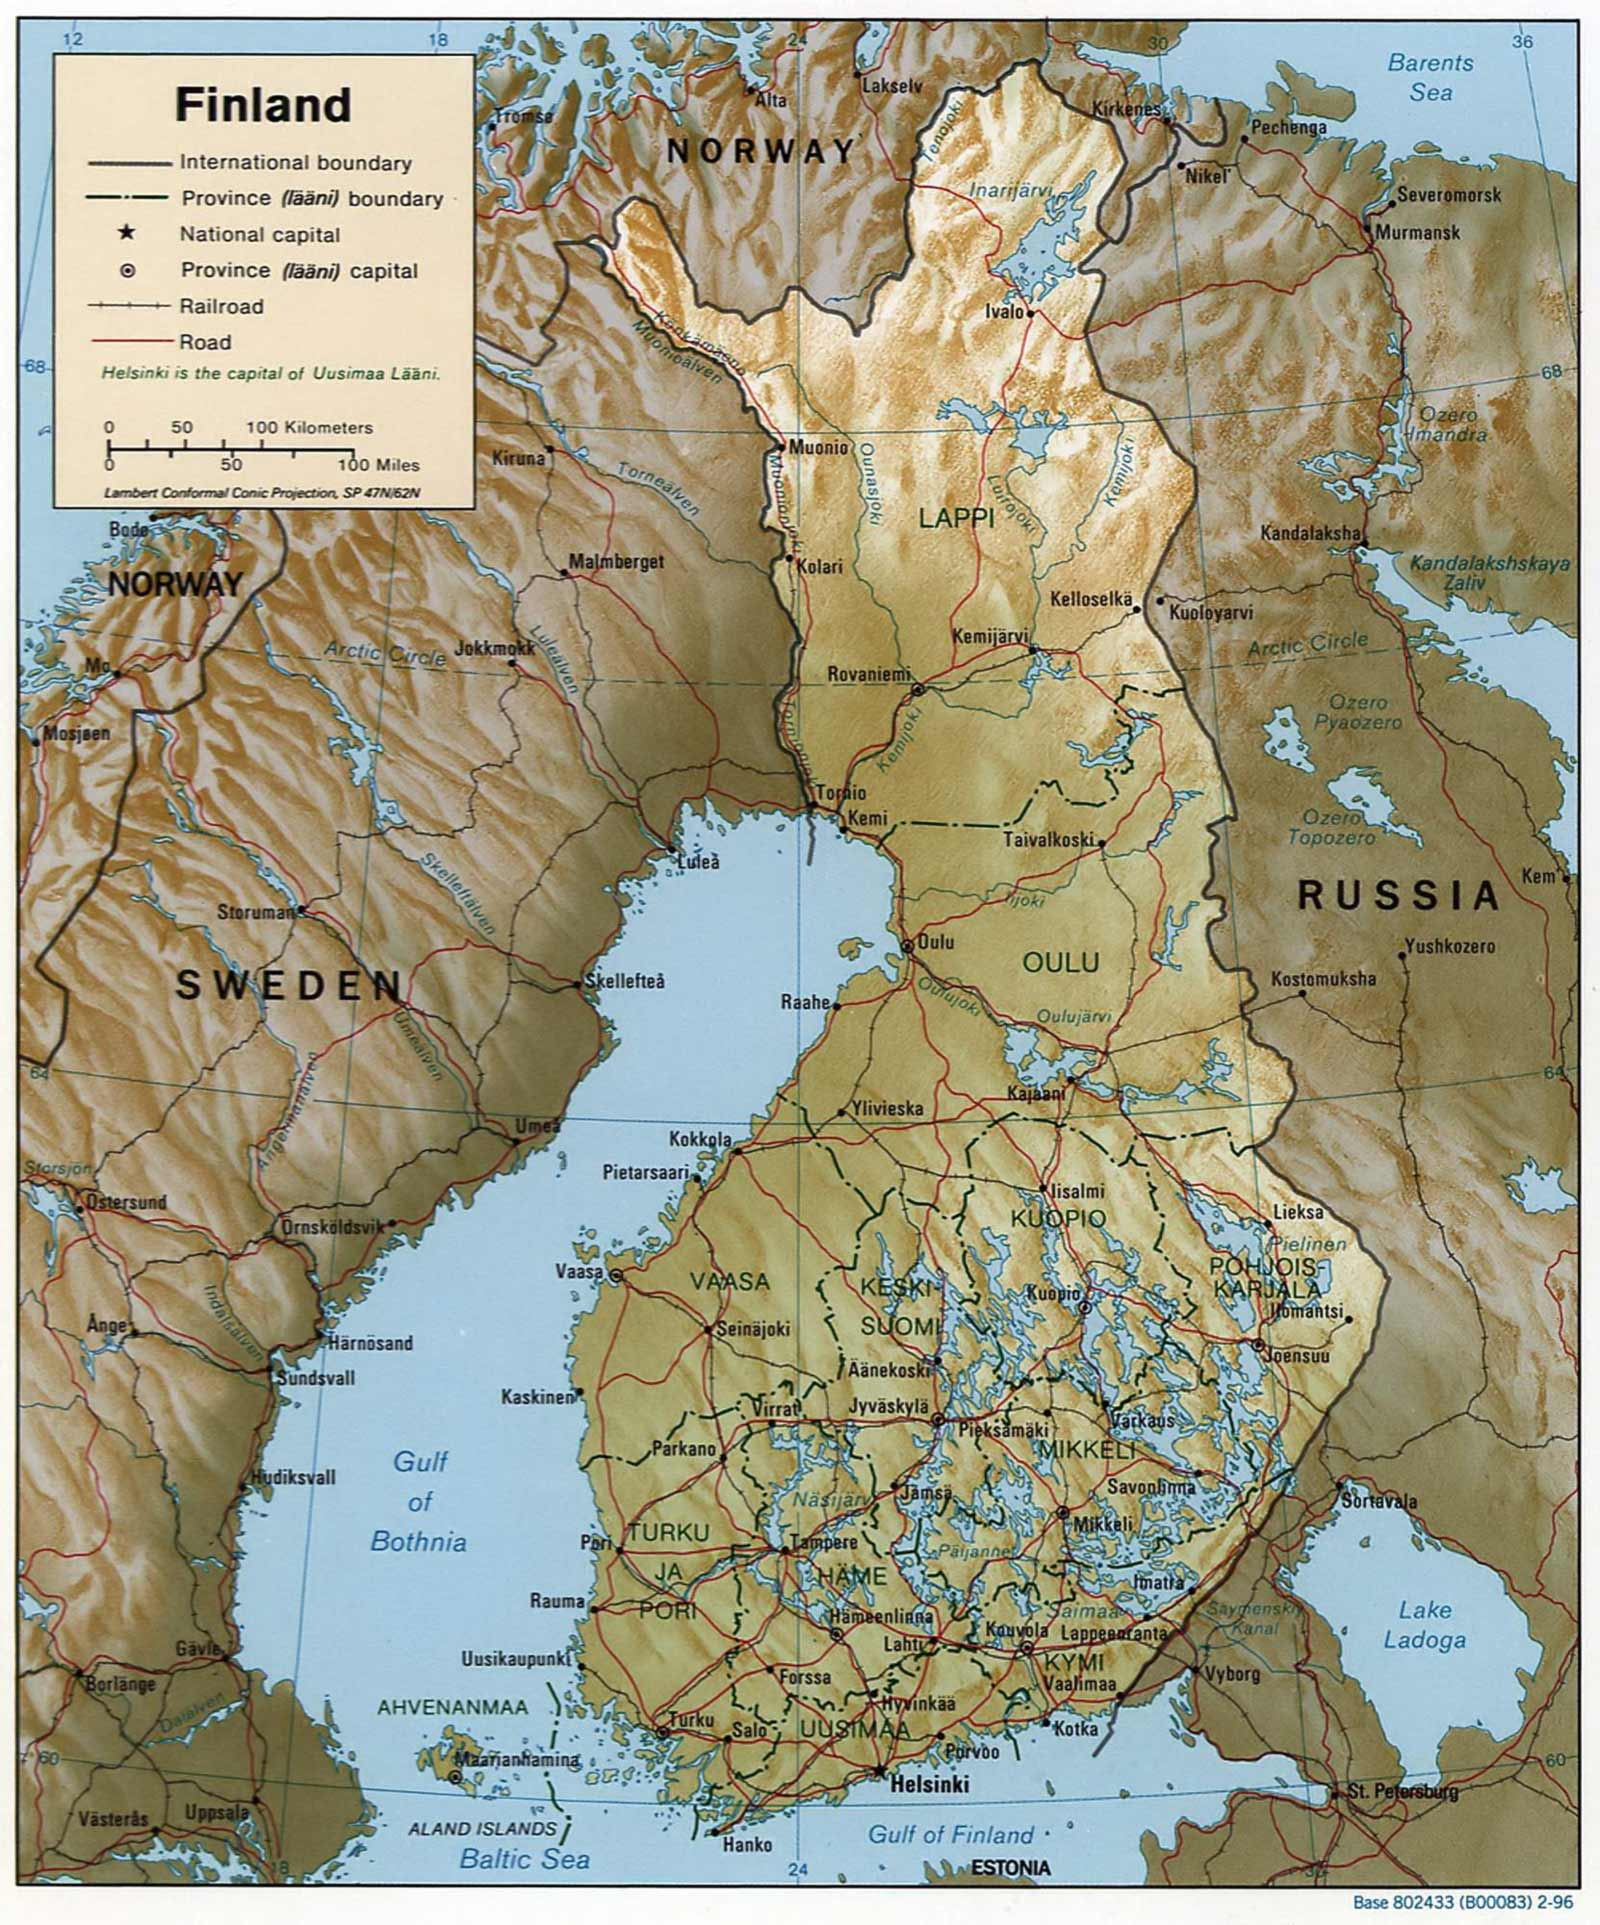 Finland 1996 Cia Map large map